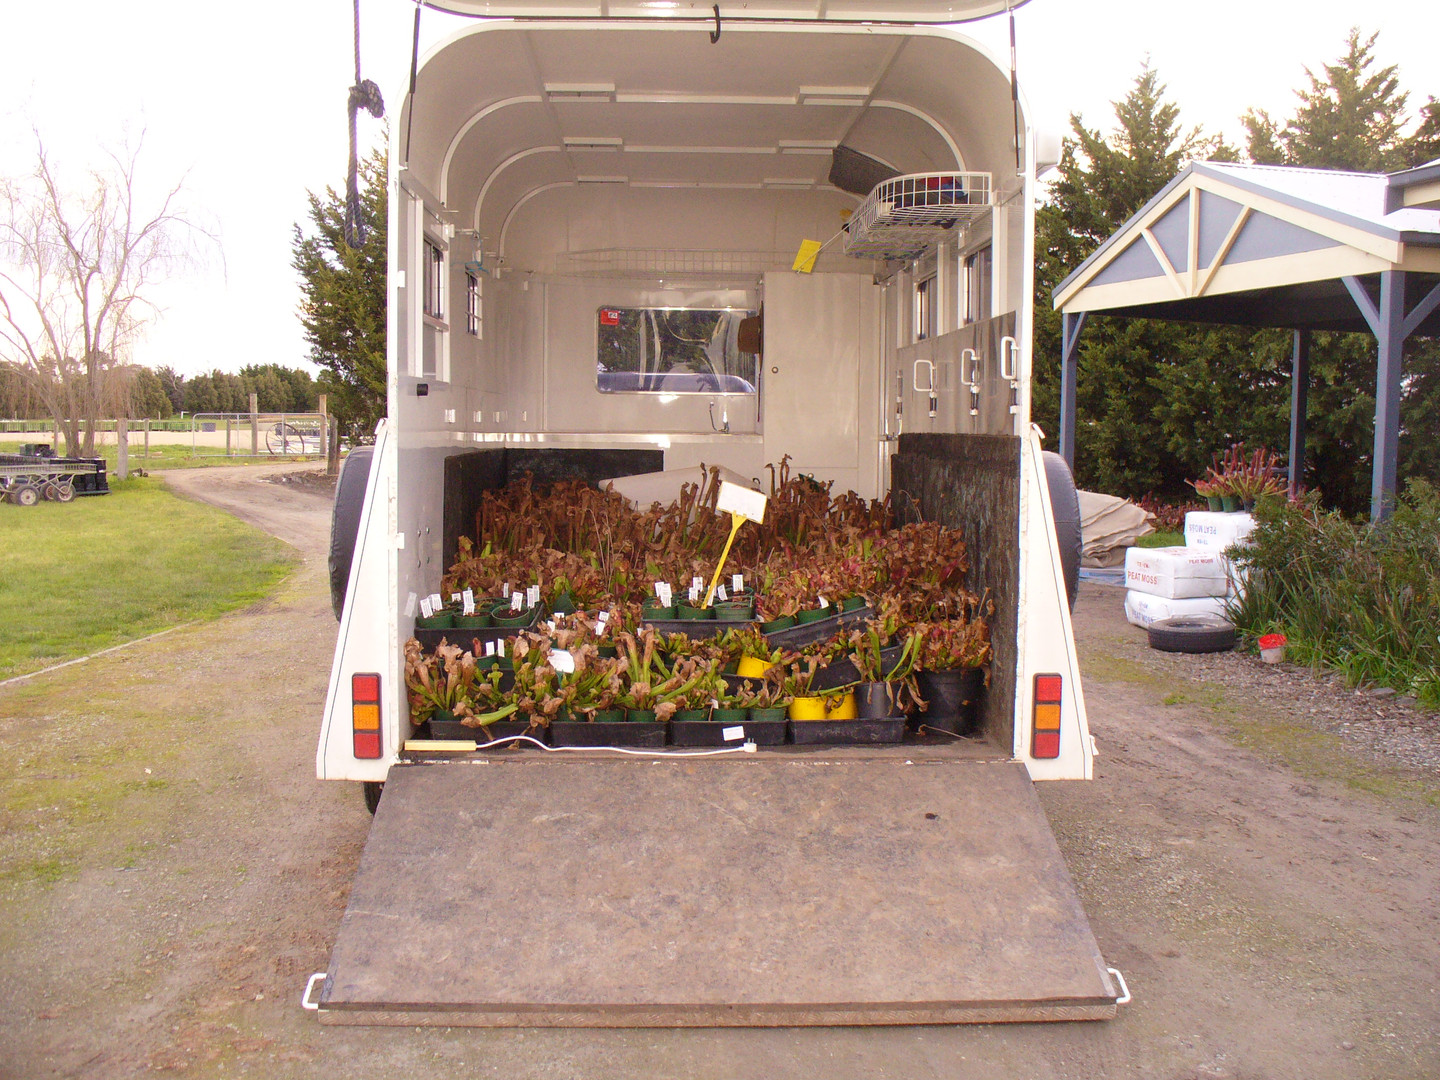 Every day on our way home from the nursery at Keysborough, Jason and Donna brought home a horse float load of plants each.